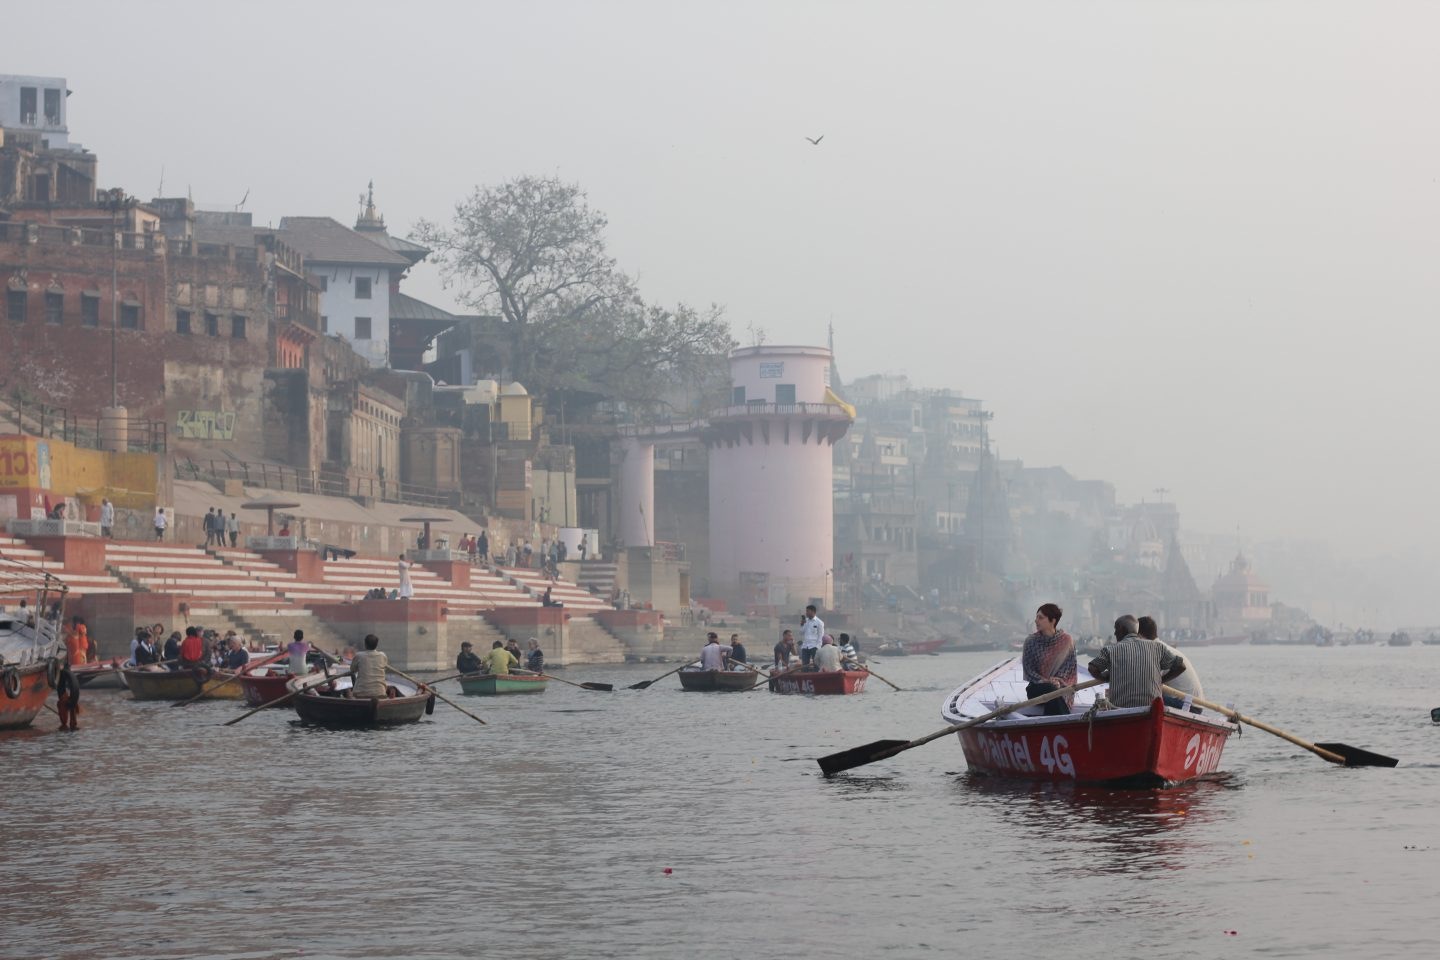 rowing boat on the ganges river early morning Varanasi in february 2018